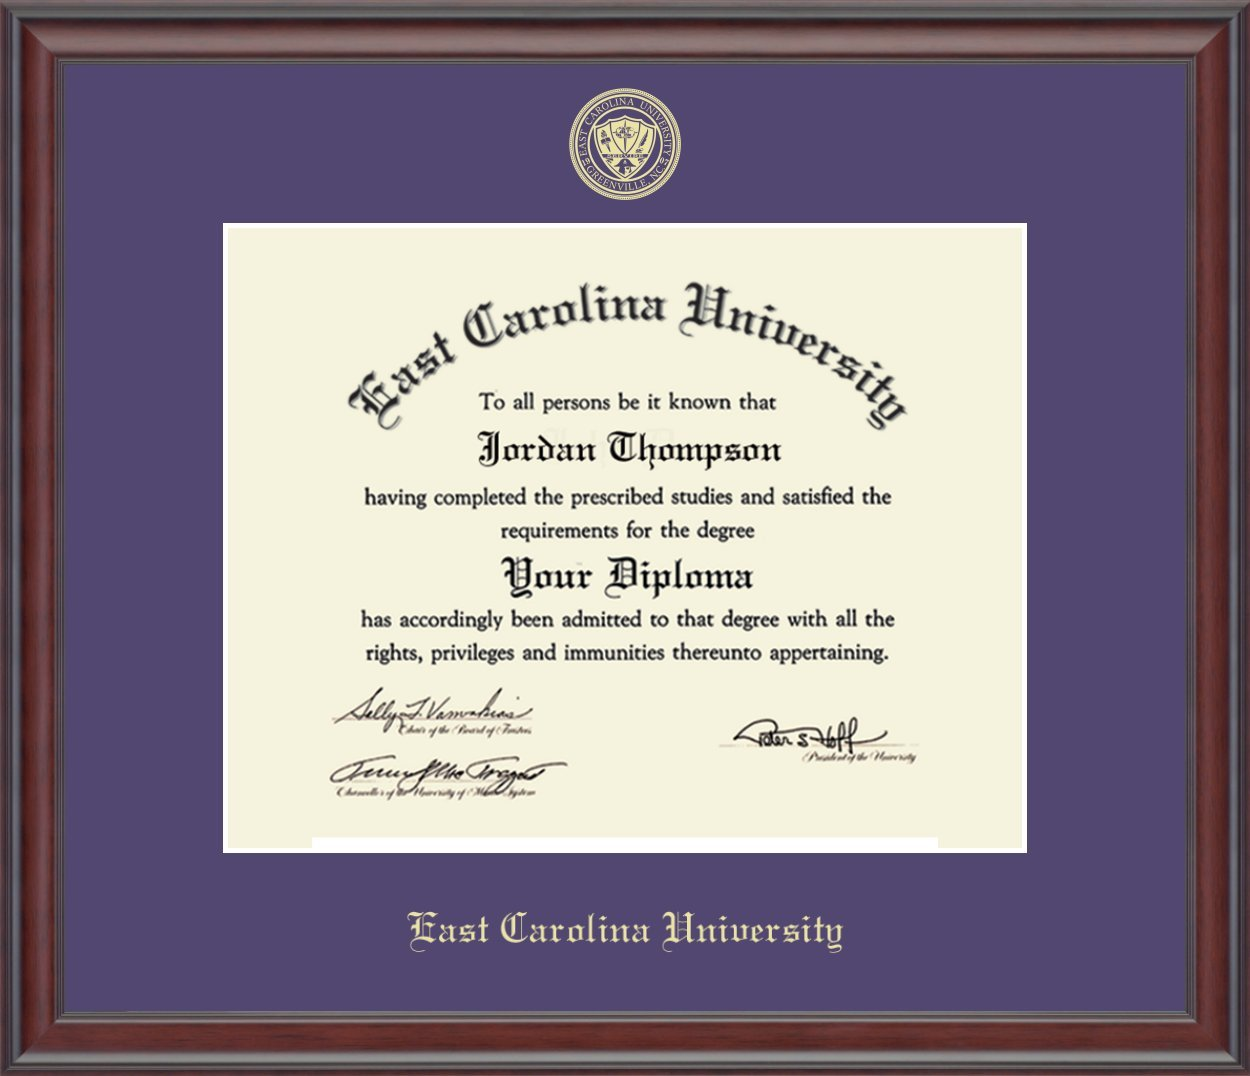 East Carolina University Gold Embossed Diploma Frame - Features Solid Hardwood ''Studio'' Moulding - Officially Licensed - 11''h x 14''w Diploma Size - By Church Hill Classics by Church Hill Classics